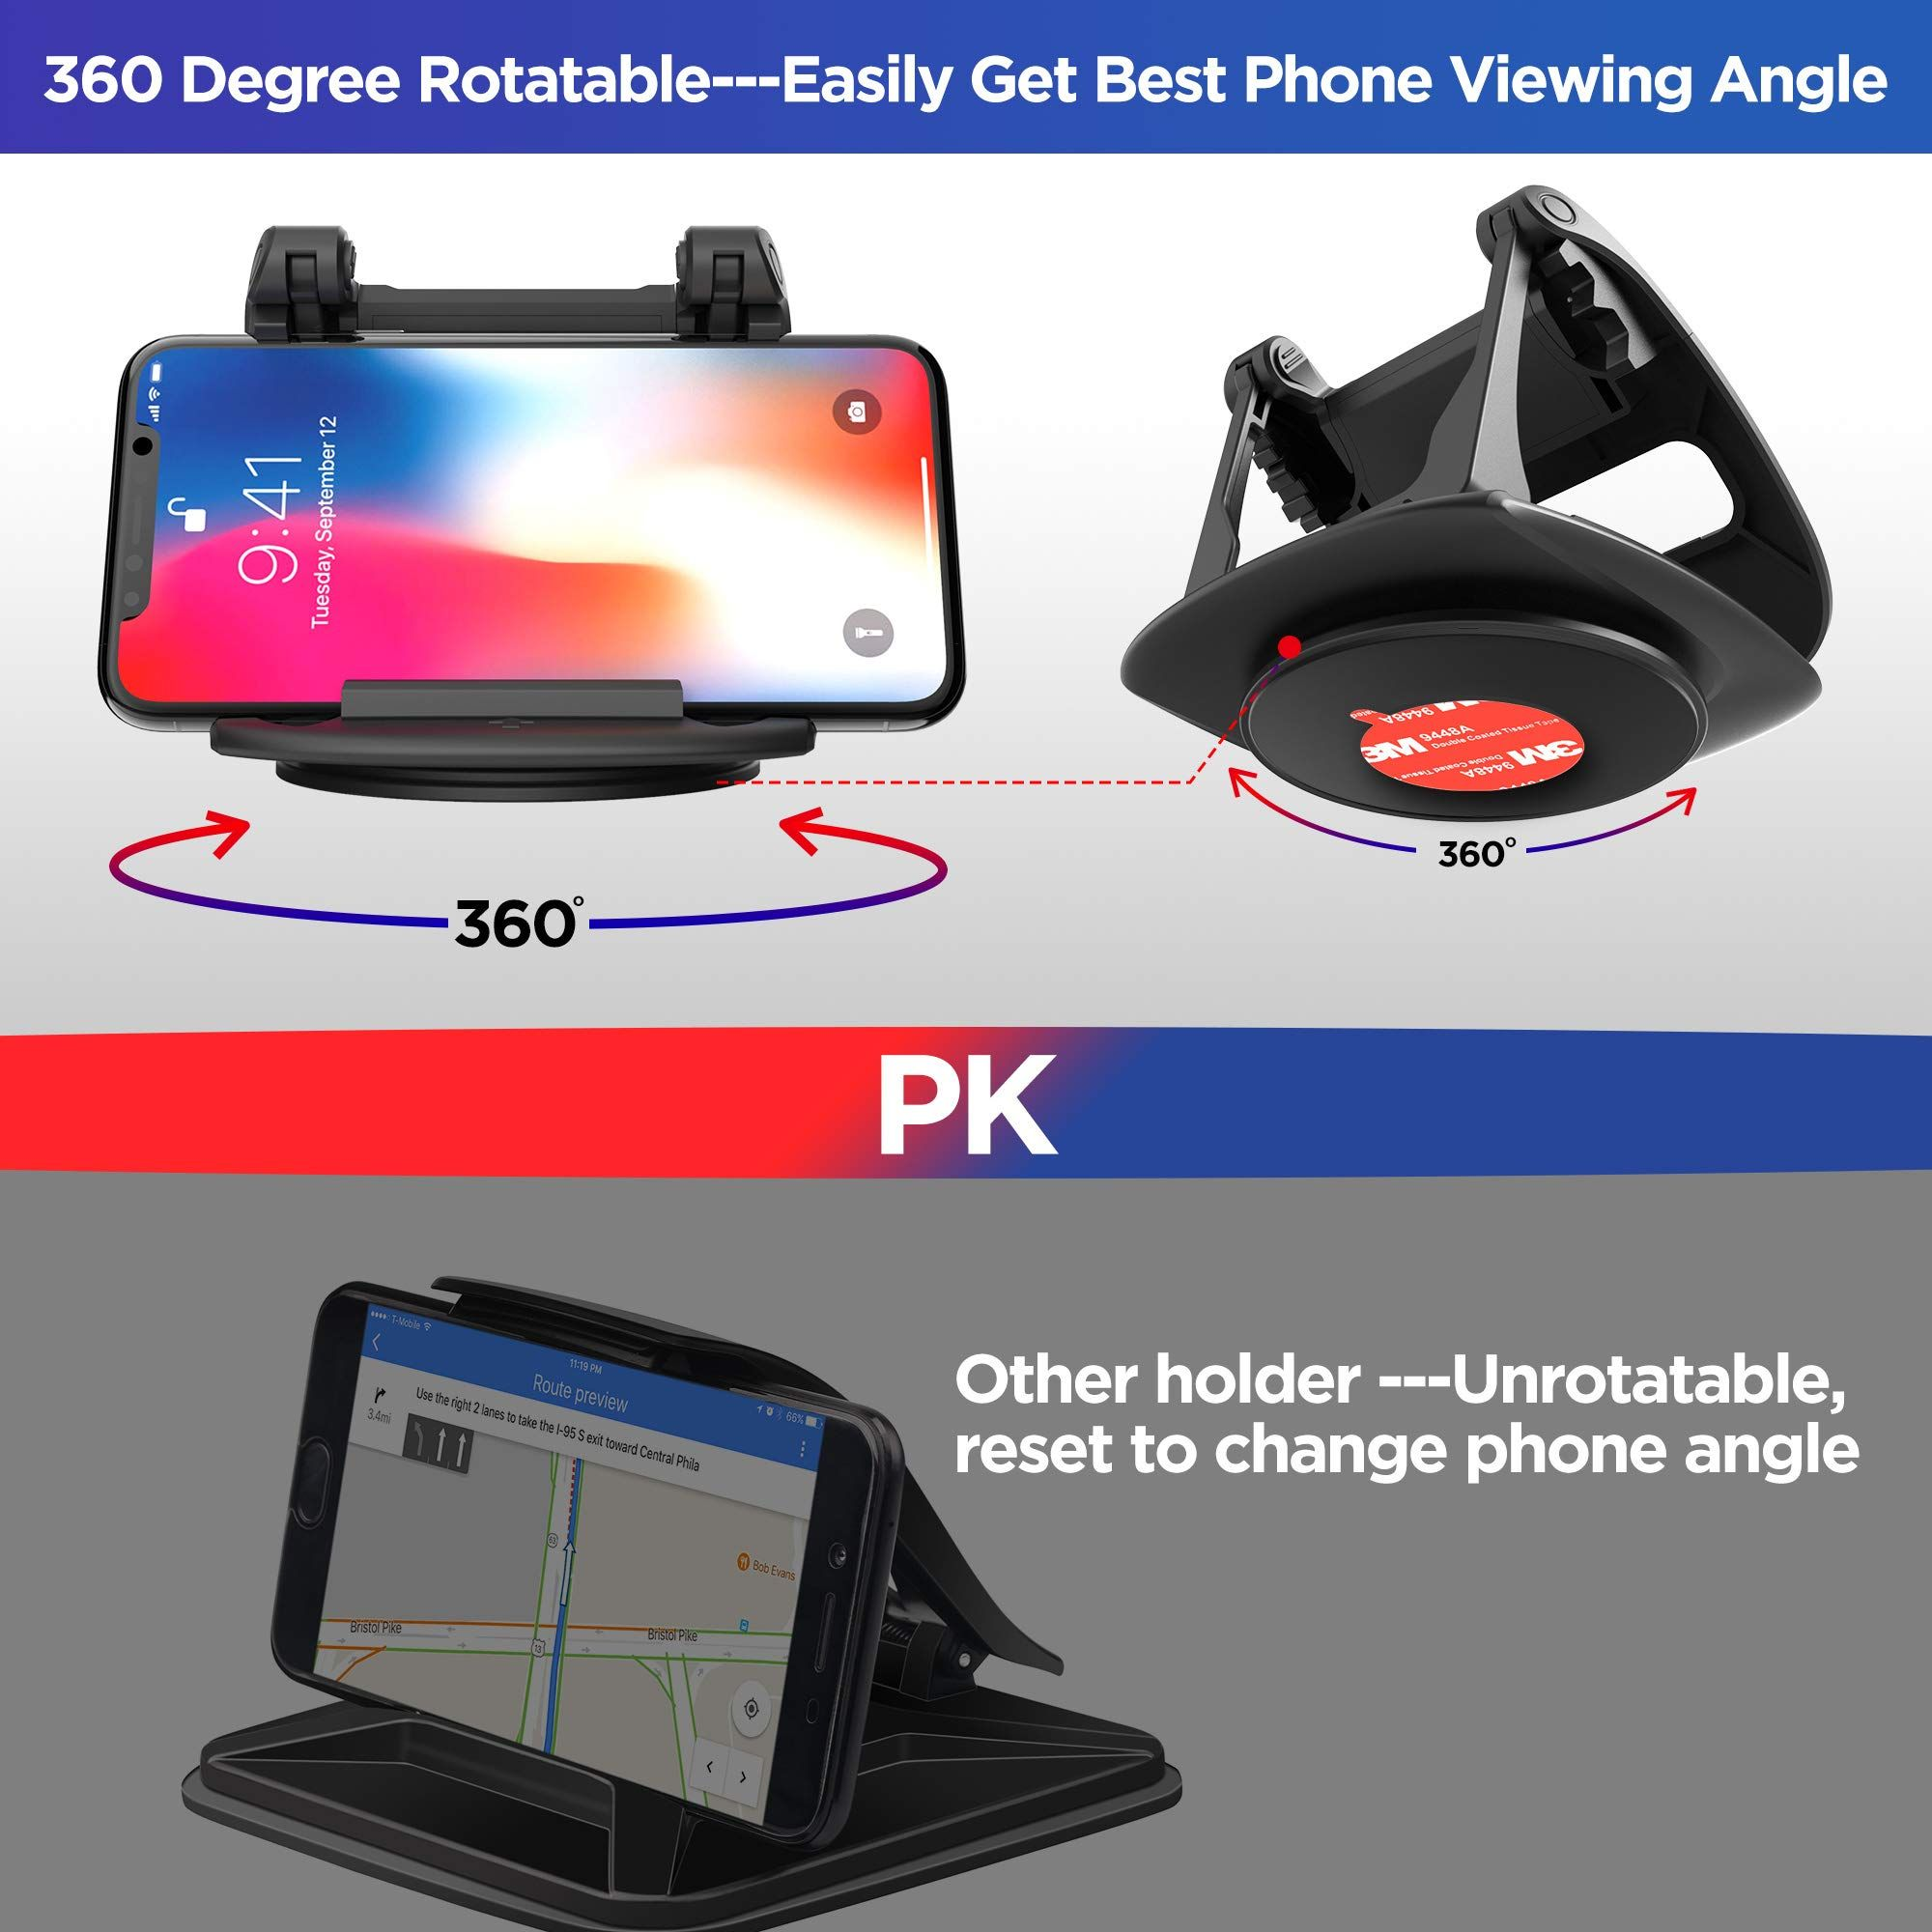 Cell Phone Holder for Car Dashboard,Universal 360 Degree Rotatable Car Dashboard Phone Mount Hold Phones Vertically//Horizontally Compatible with GPS,iPhone 7 6 6s X XS 8 Plus Samsung S9 S8 S7 S6